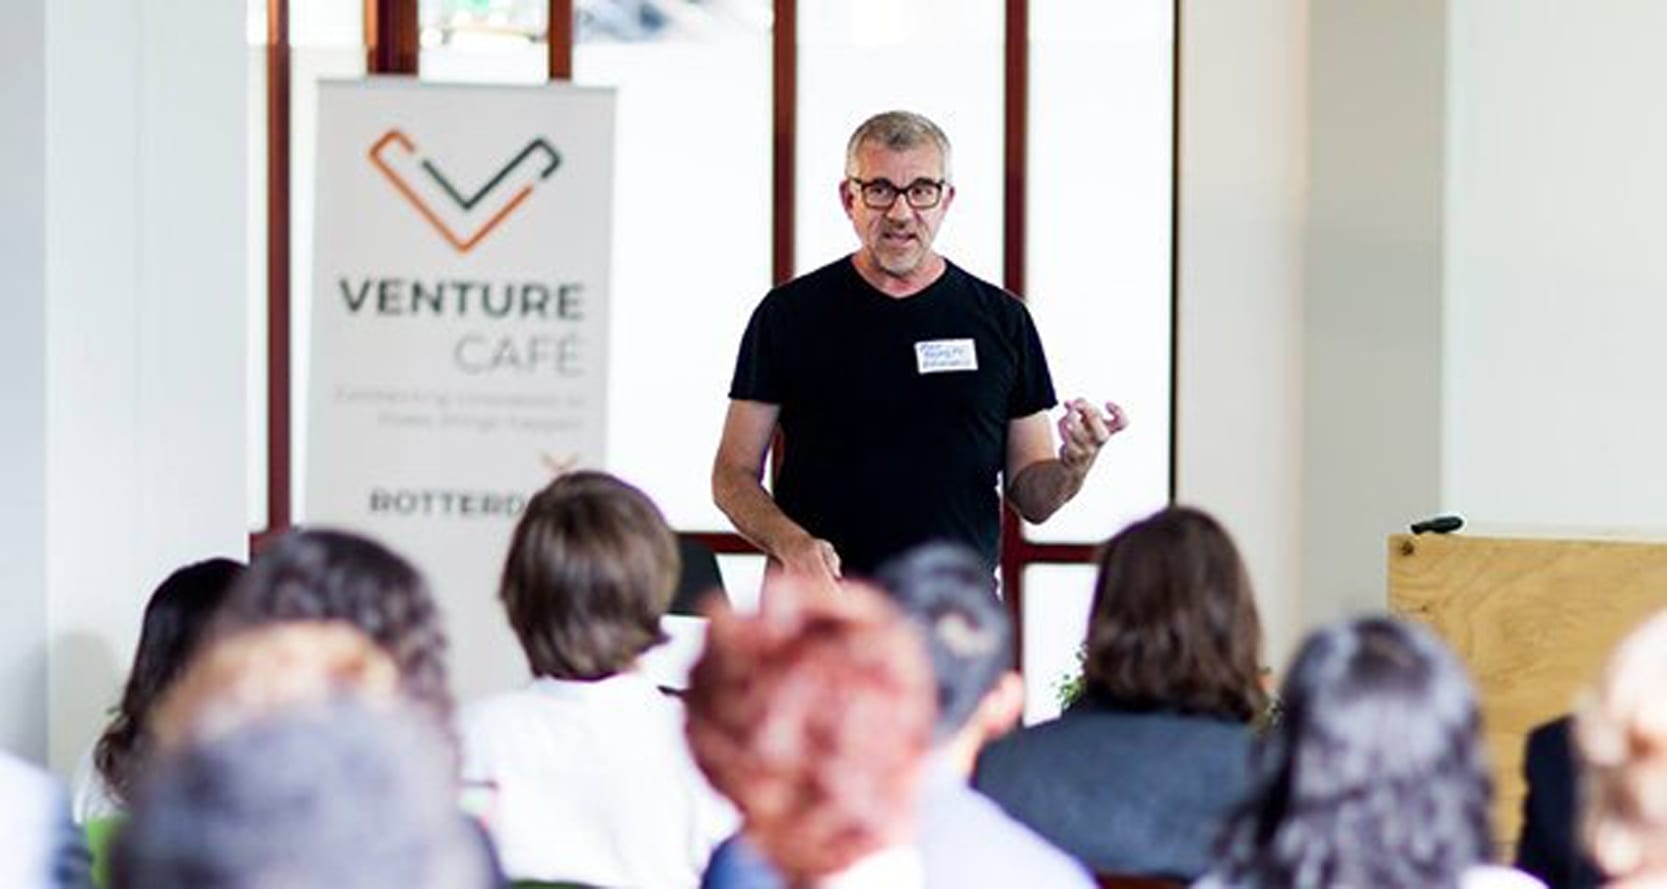 Pitch Guru David Beckett shares secrets to pitch successfully